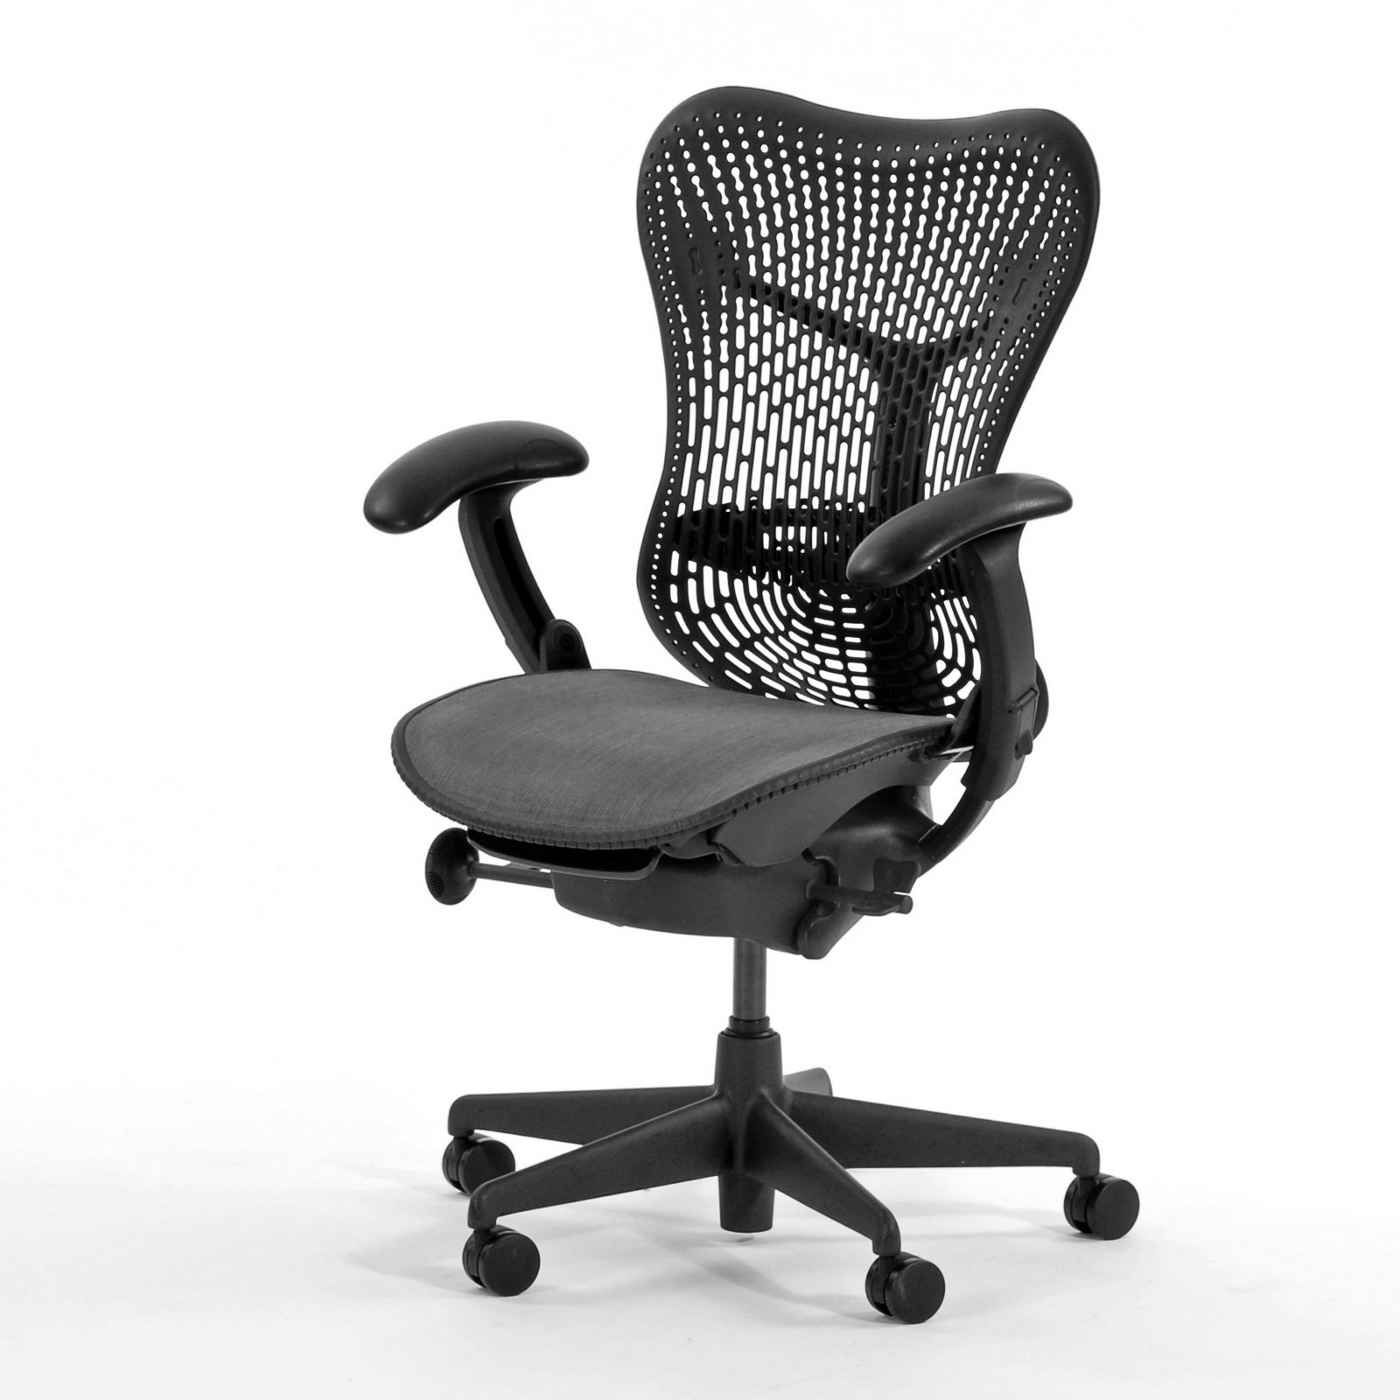 ergonomic chair betterposture saddle chair jobri. Ergonomic Chairs Chair Betterposture Saddle Jobri